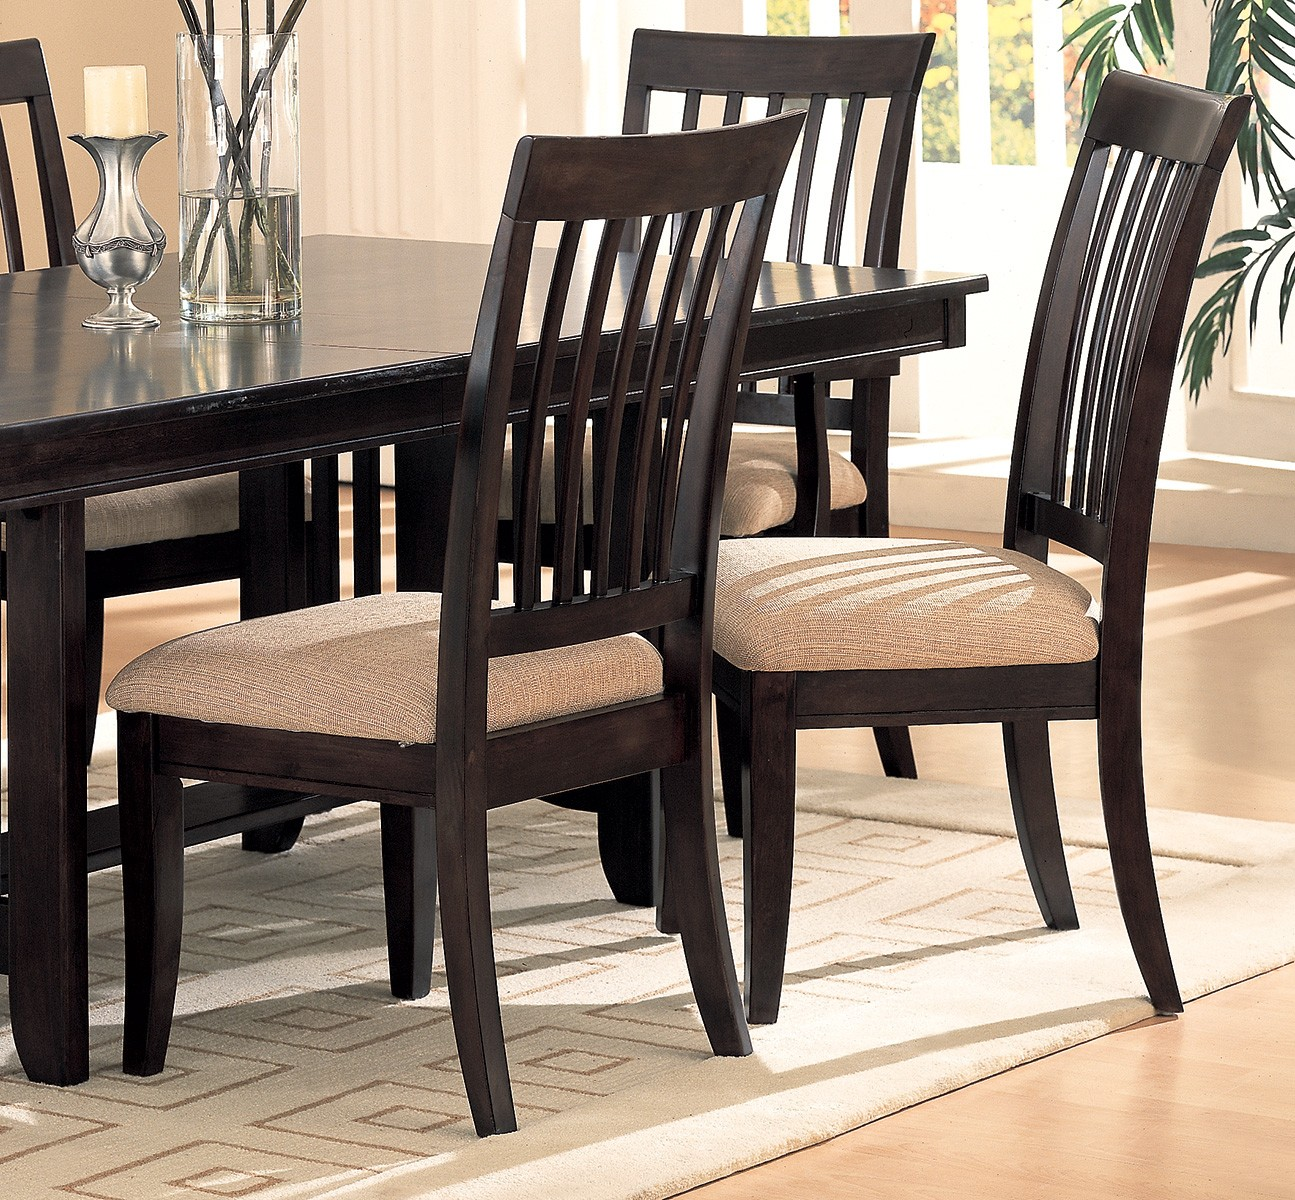 Wooden Dining Chairs 7